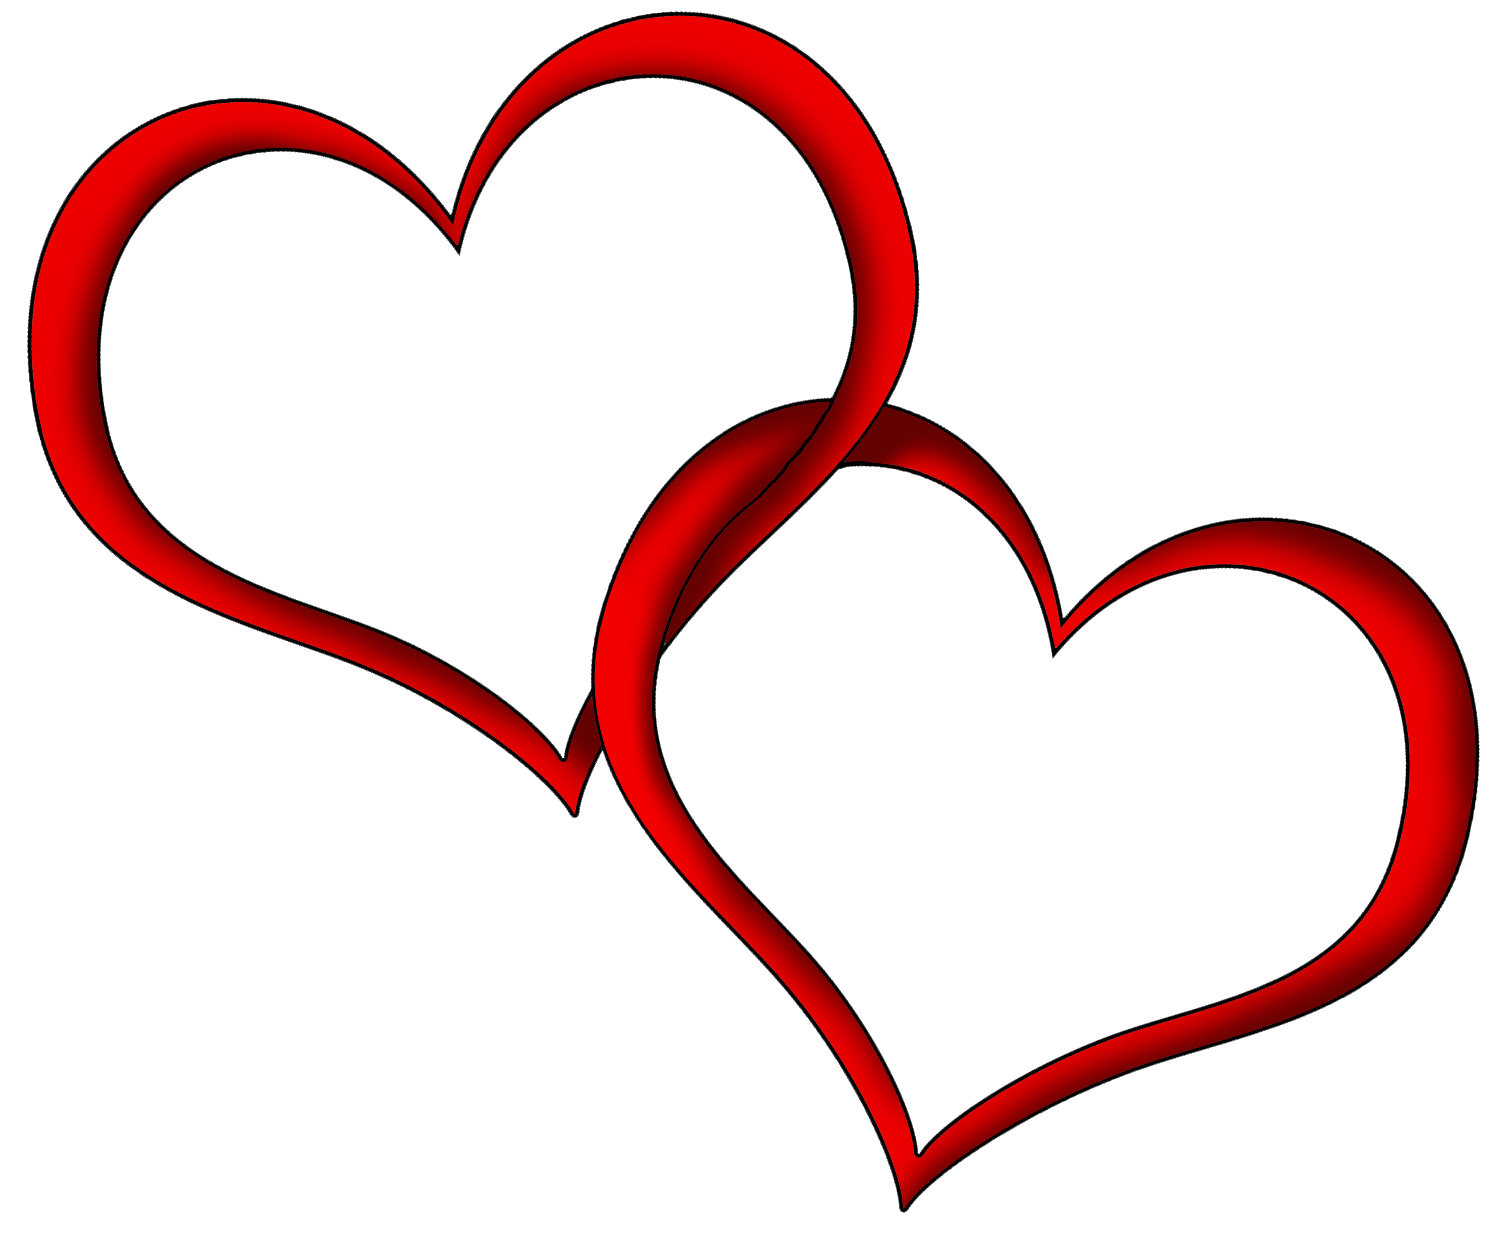 Heart clipart #2, Download drawings